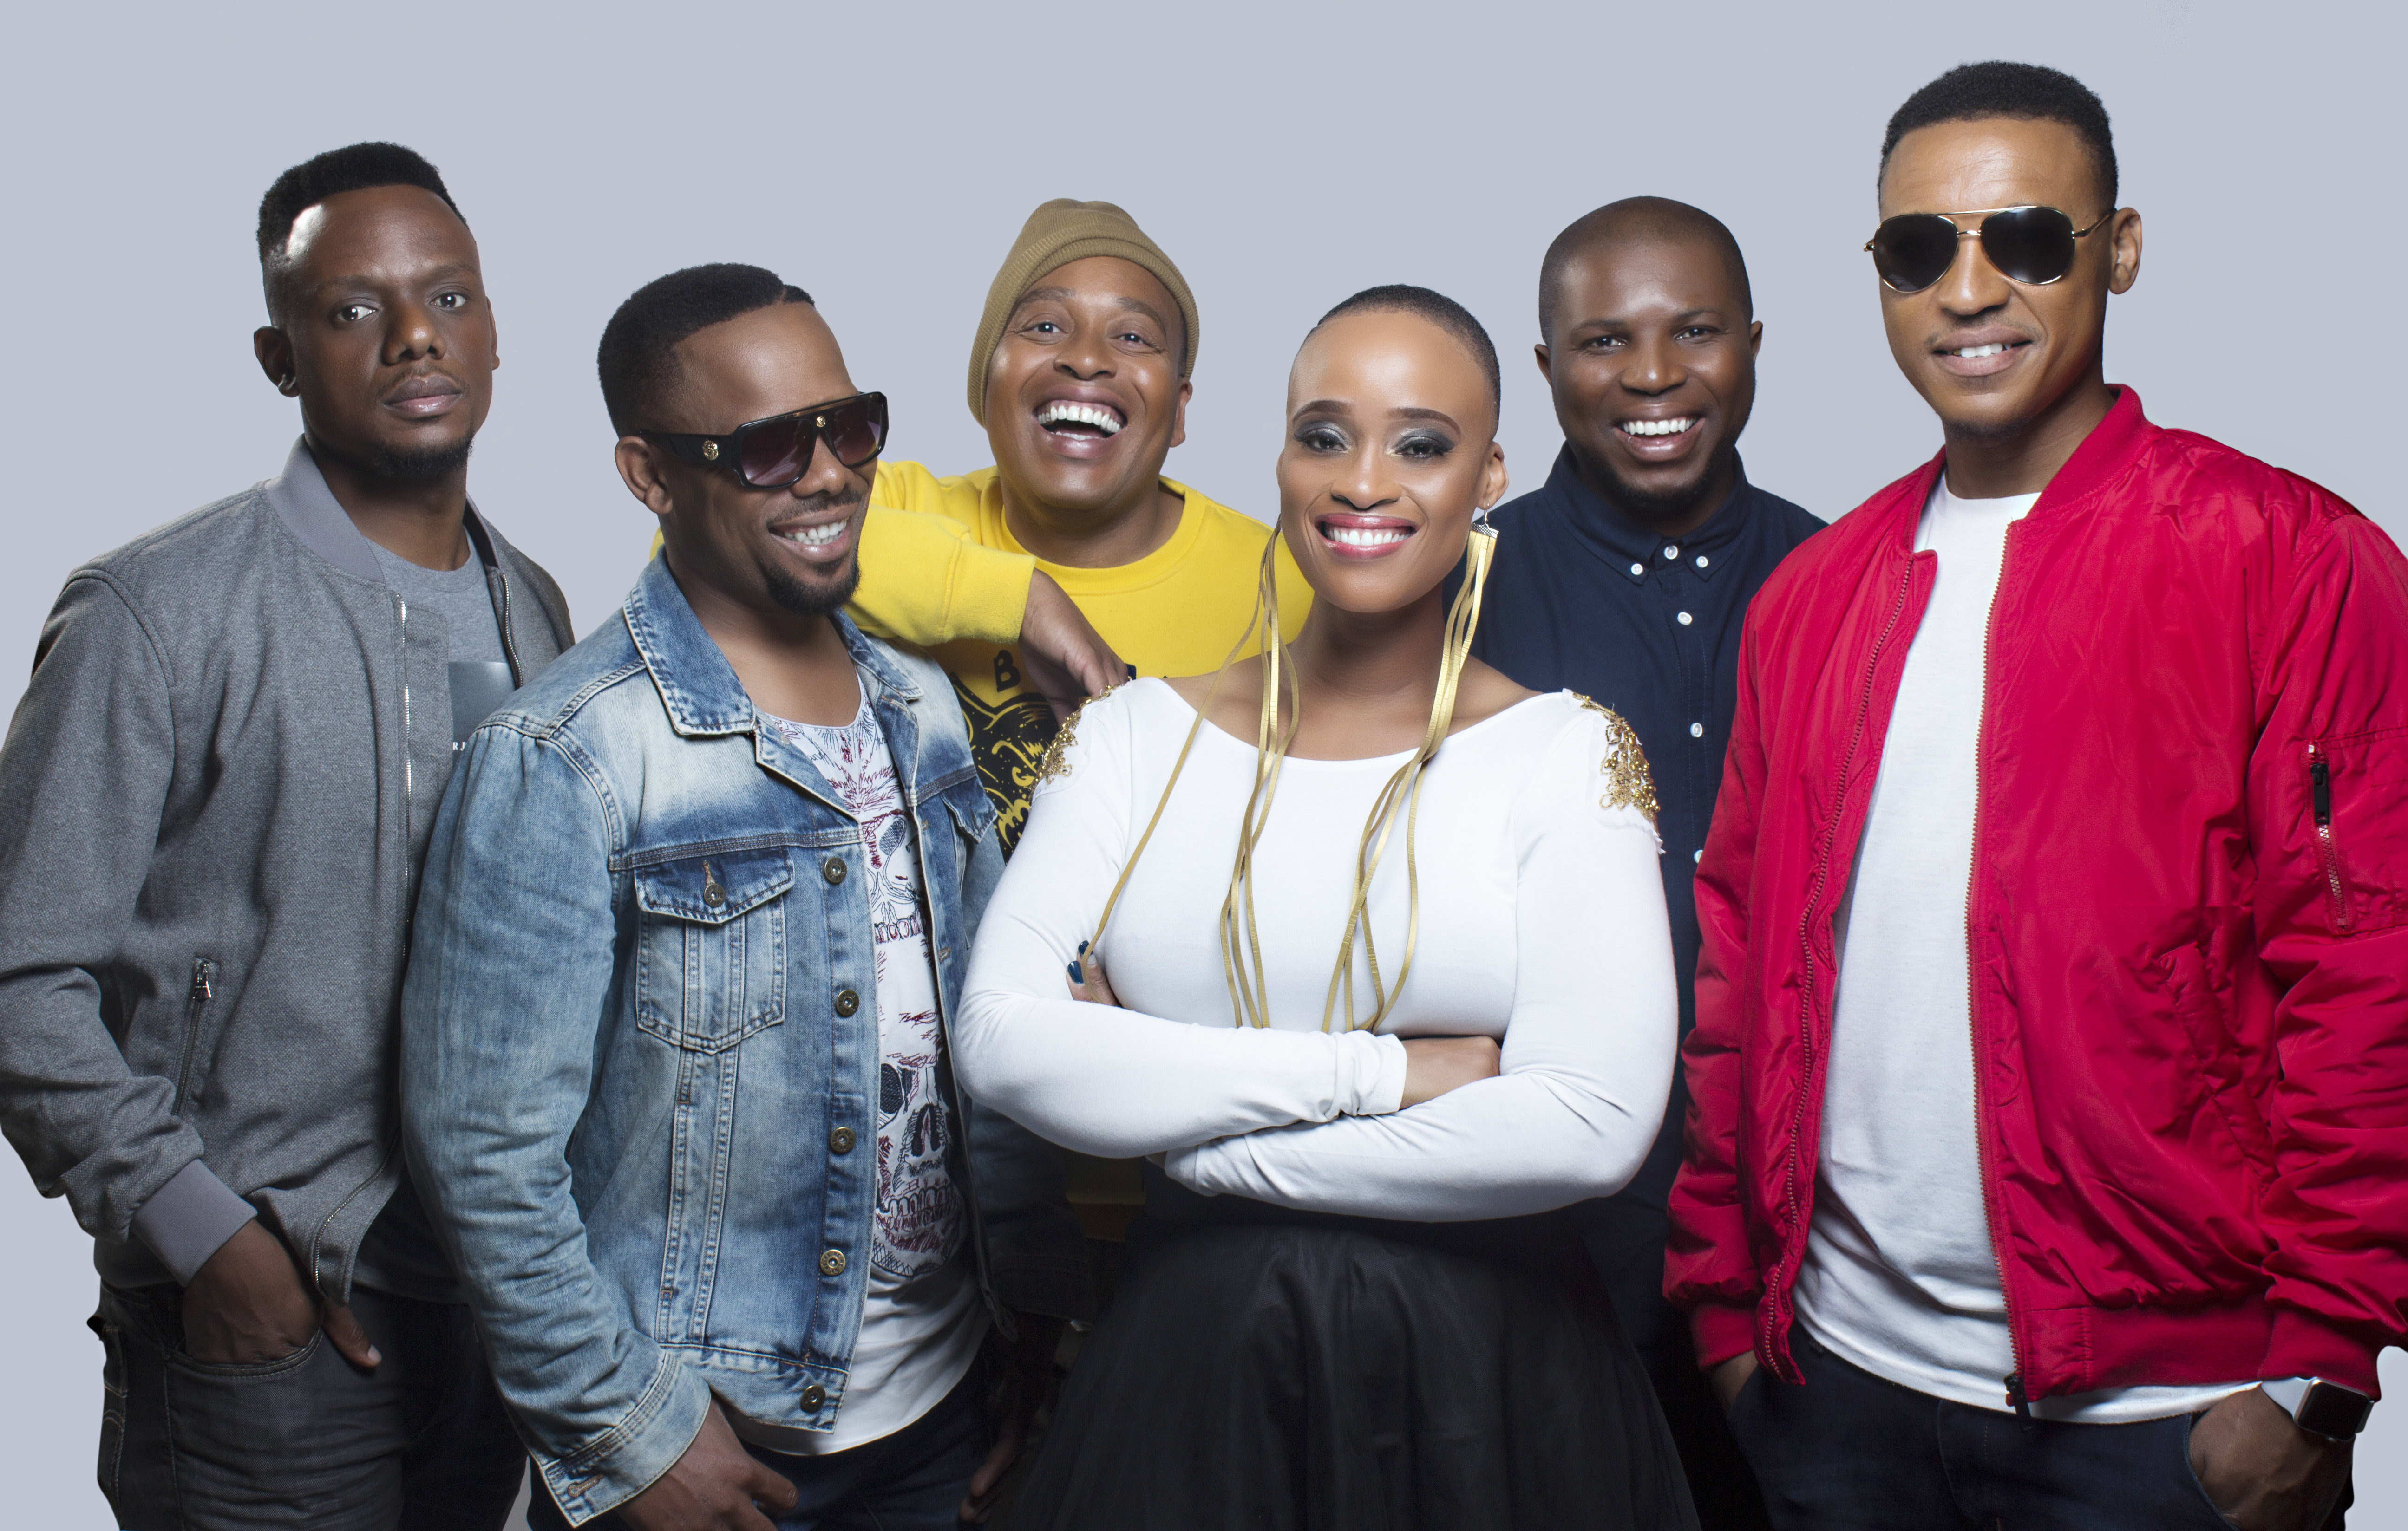 SKWATTA KAMP is set to release their new official single, Mama Akekho, leading up to their upcoming album release in 2019.